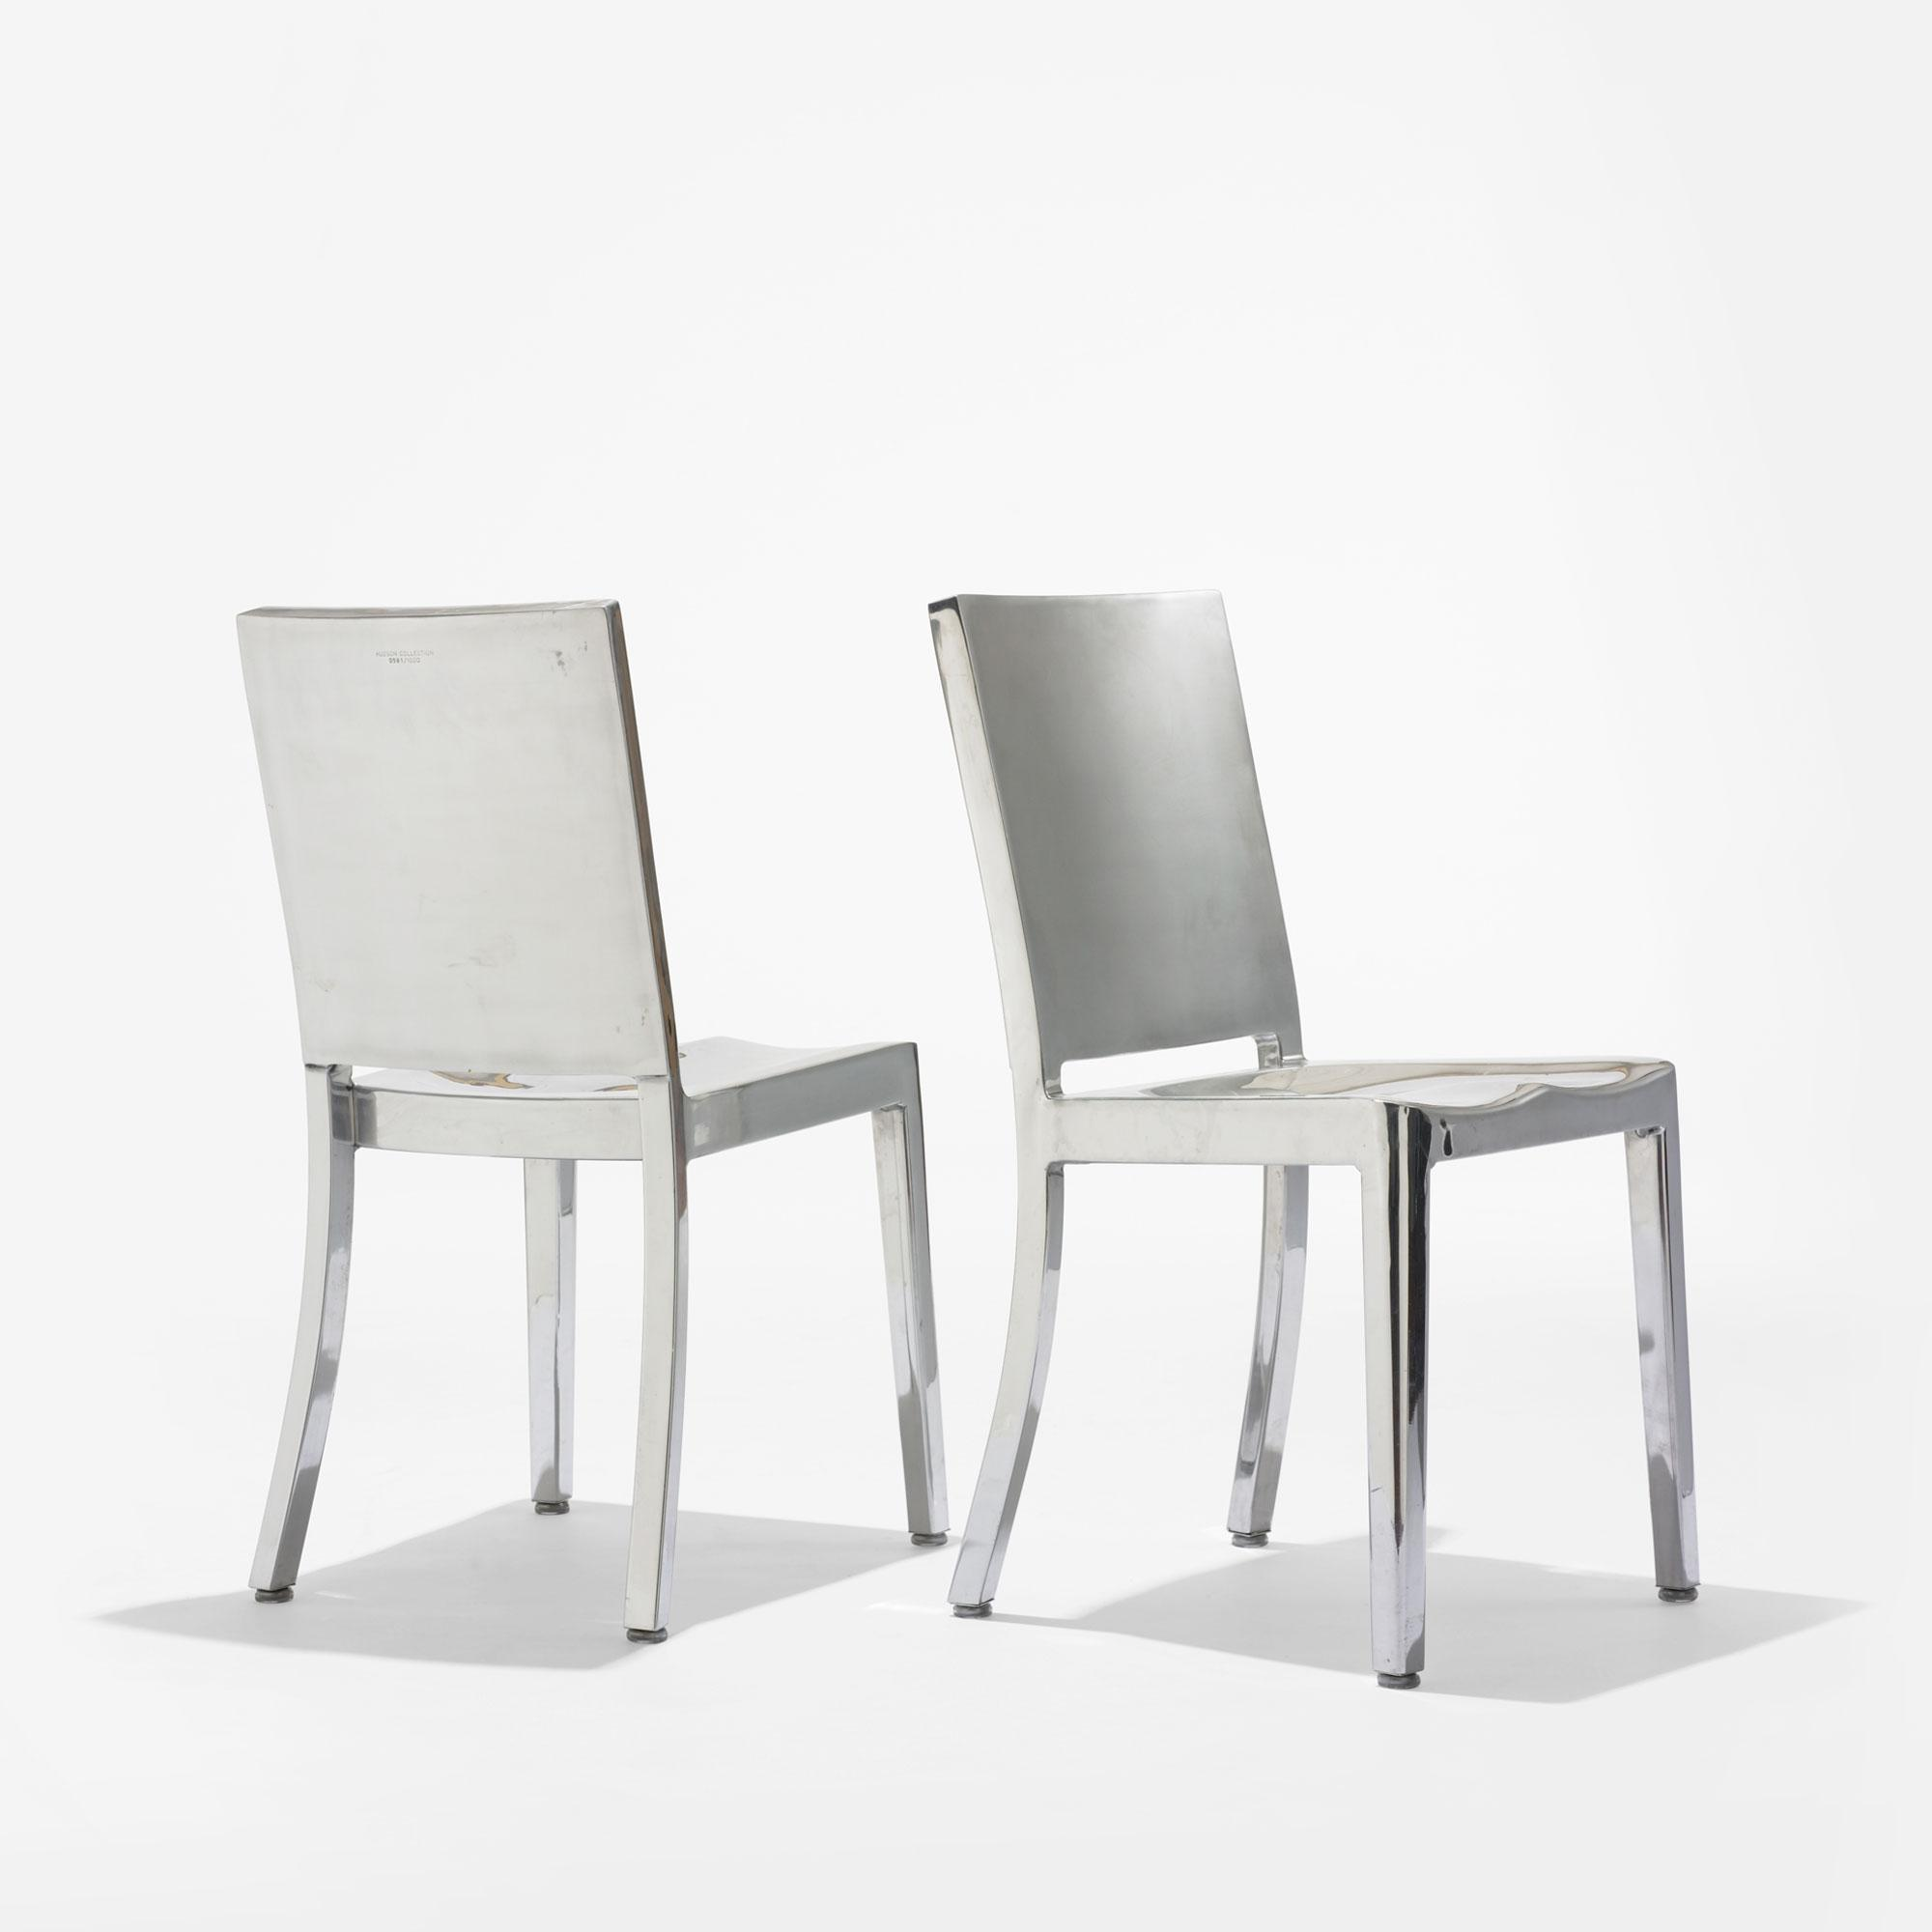 philippe starck hudson chairs pair. Black Bedroom Furniture Sets. Home Design Ideas